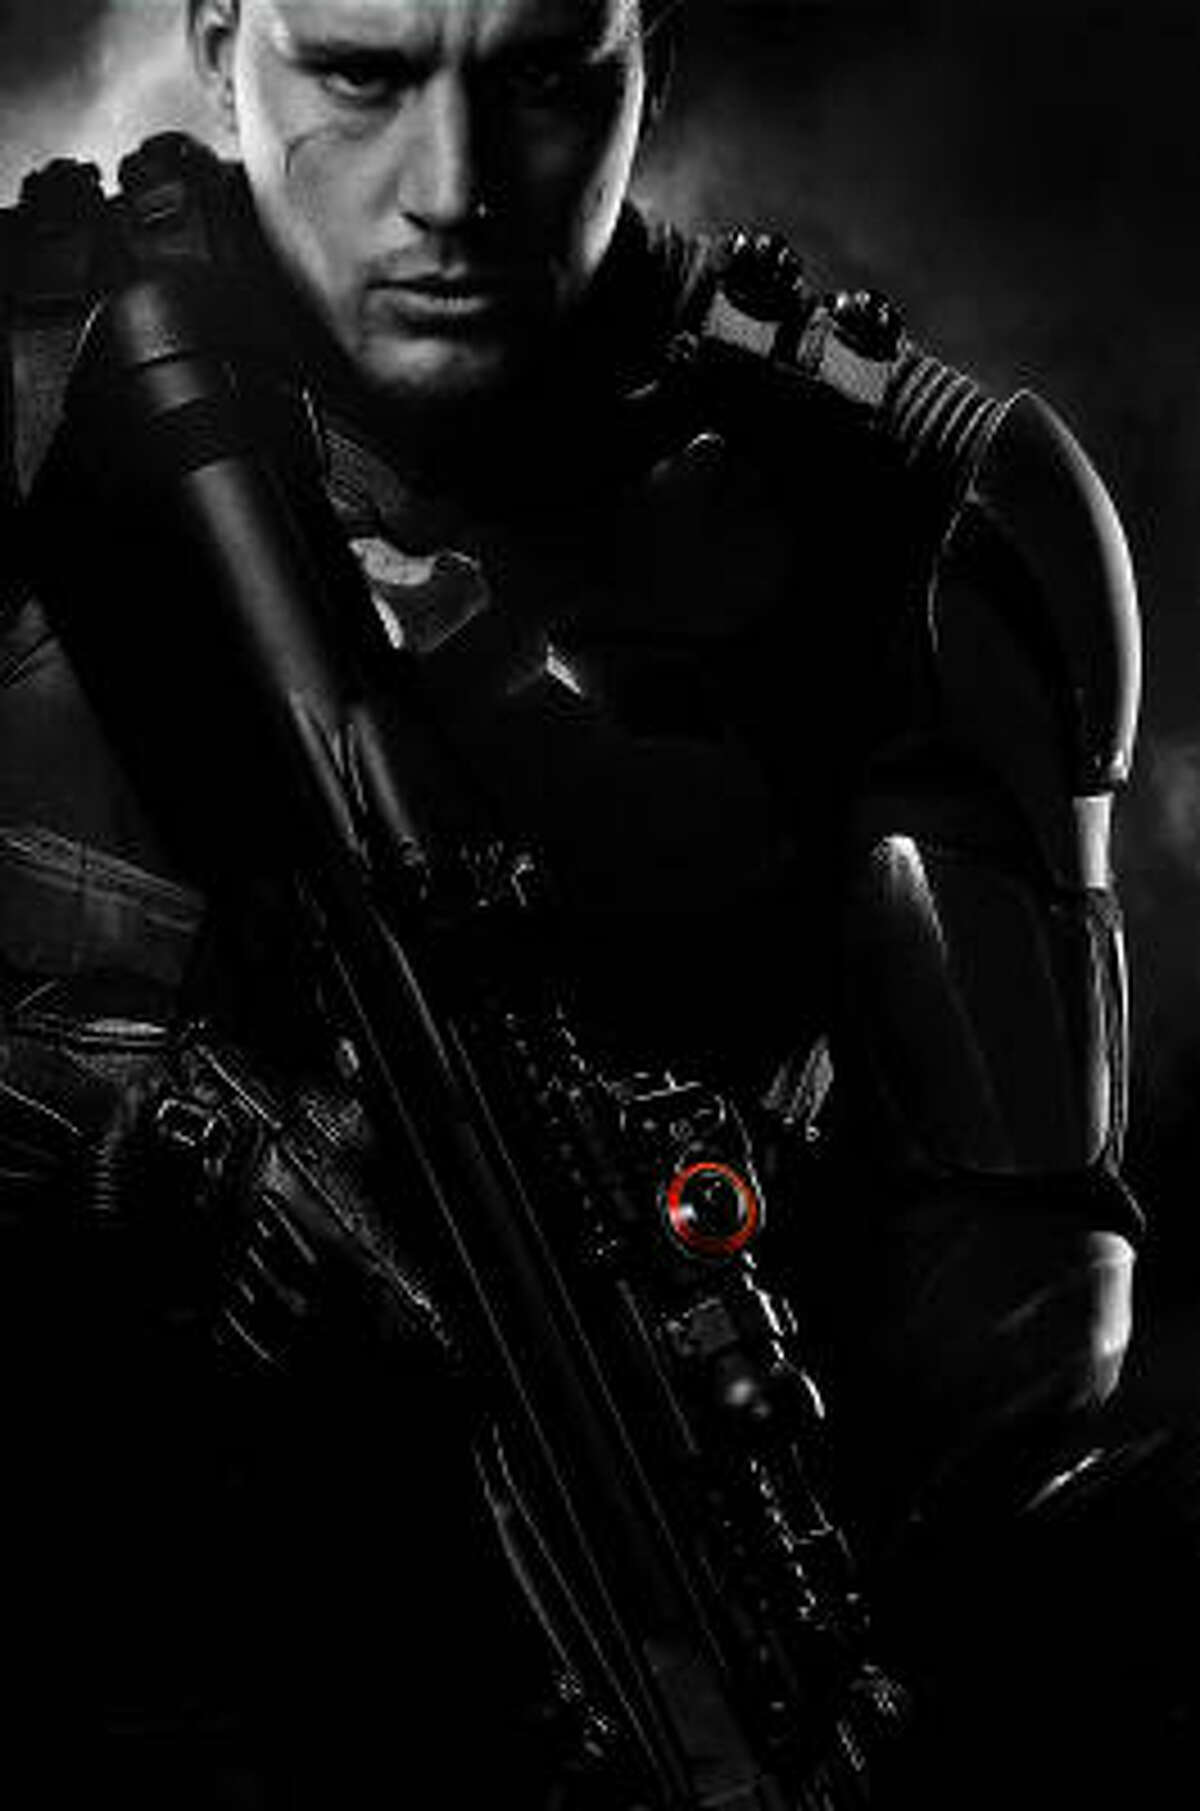 1. G.I. Joe: The Rise of Cobra rakes in $56.2 million this weekend. To read more about box office trends, click here.